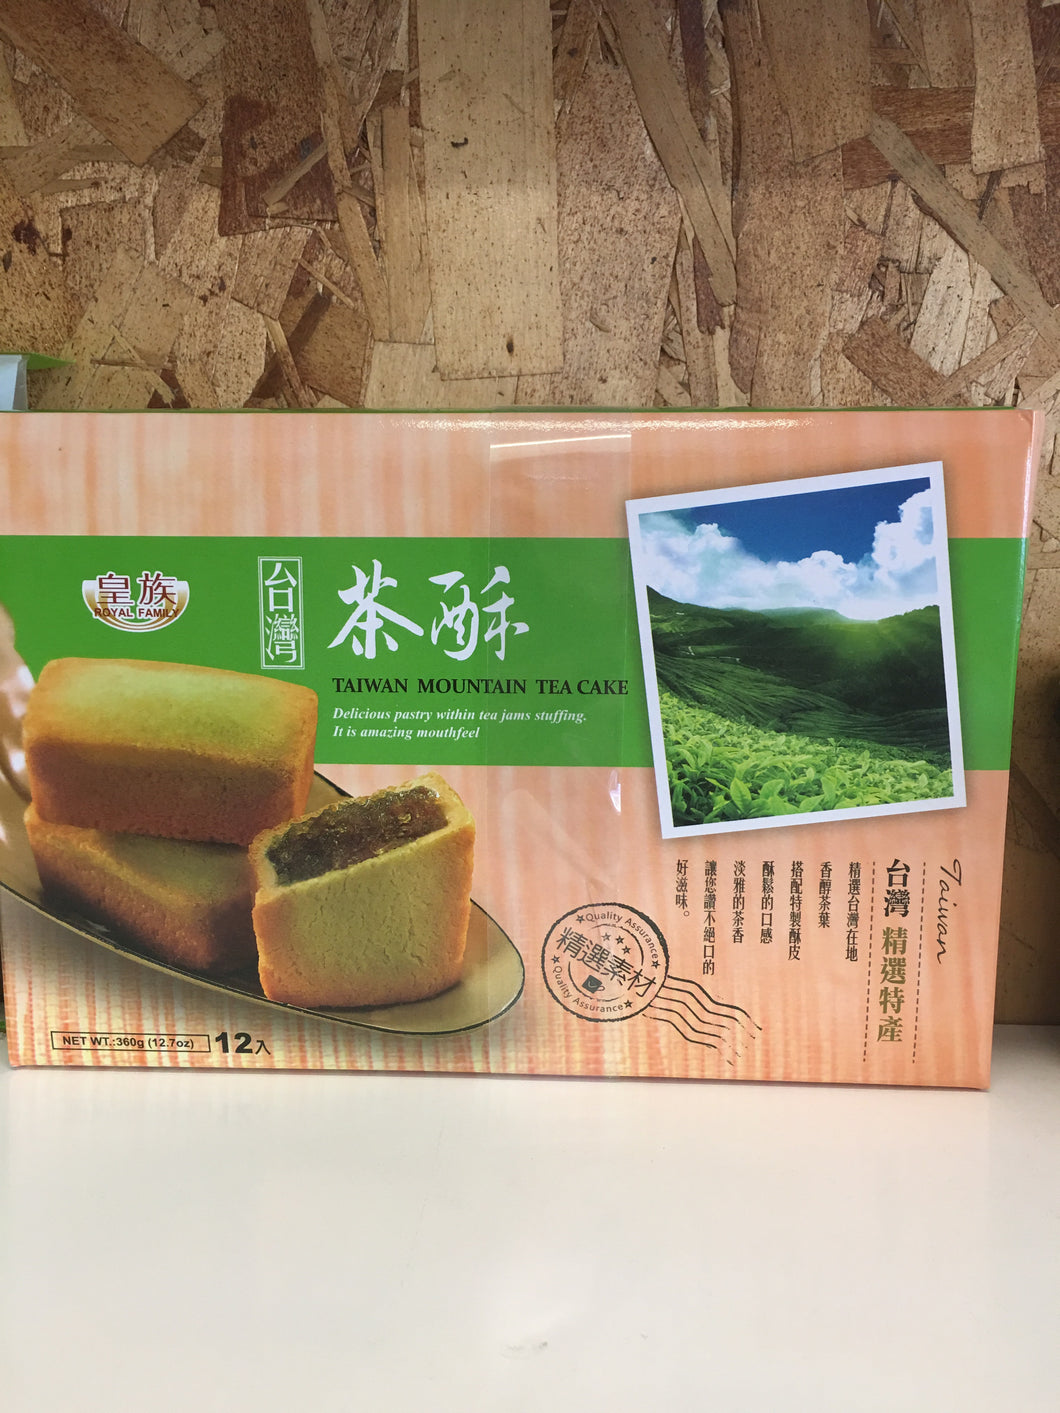 Taiwan Mountain Tea Cake